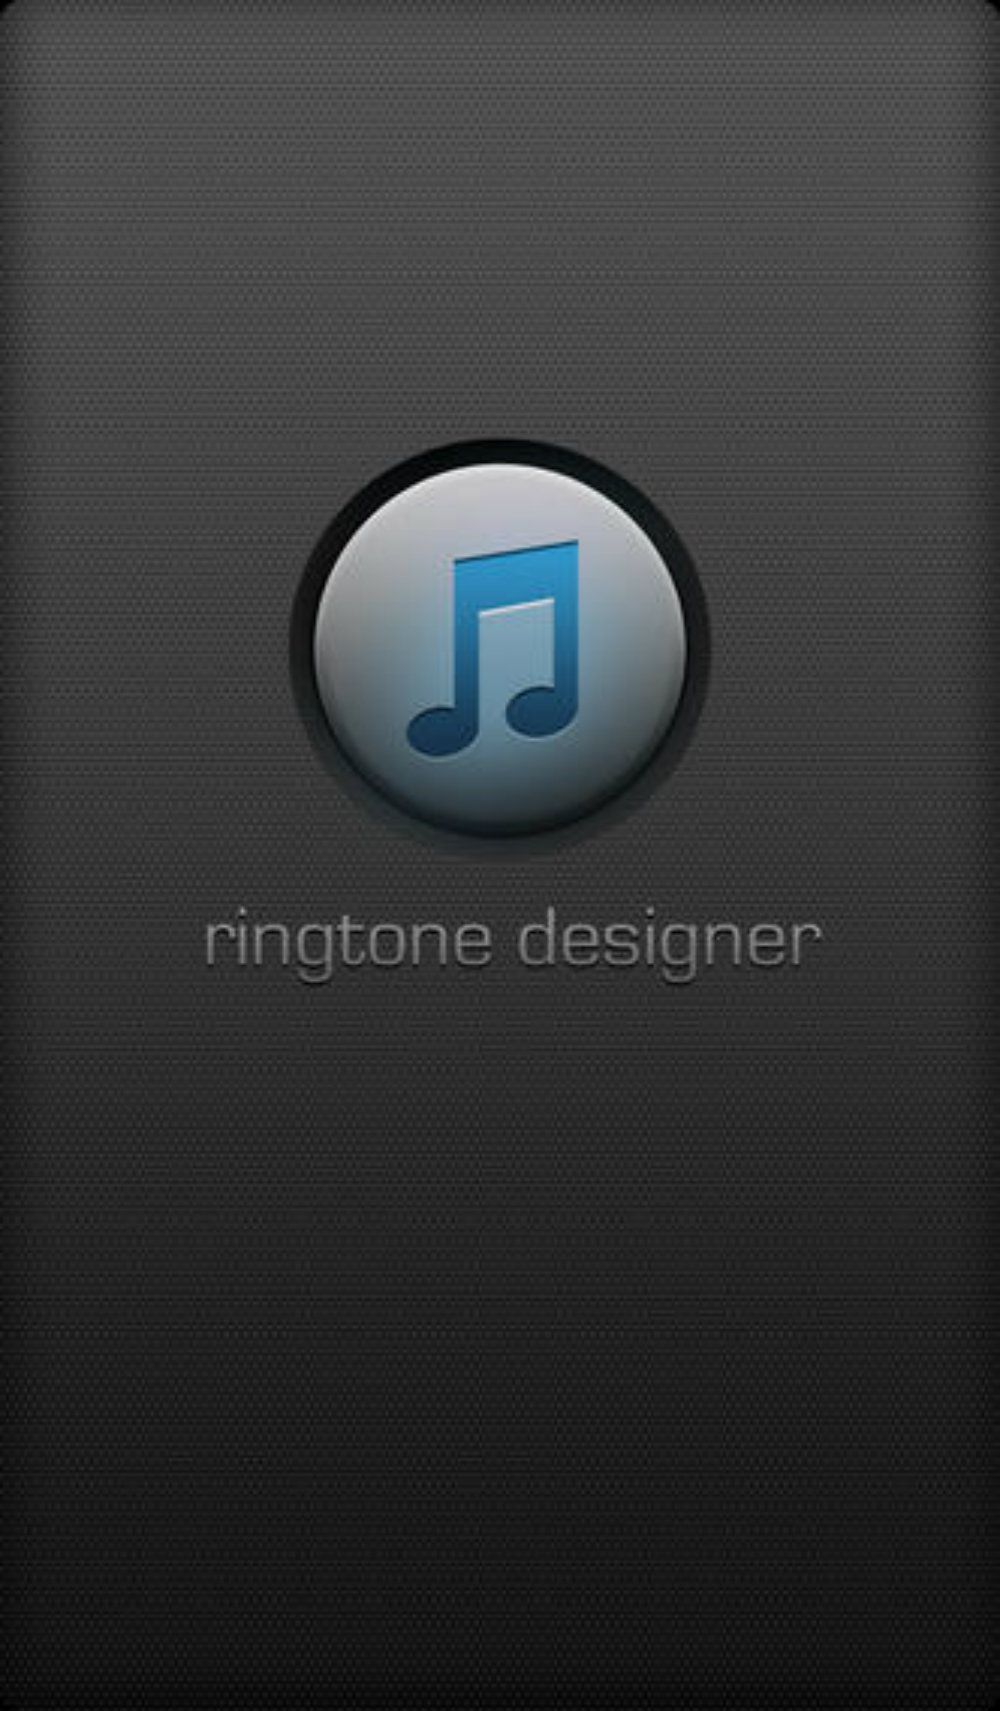 how to make a ringtone for iphone 8